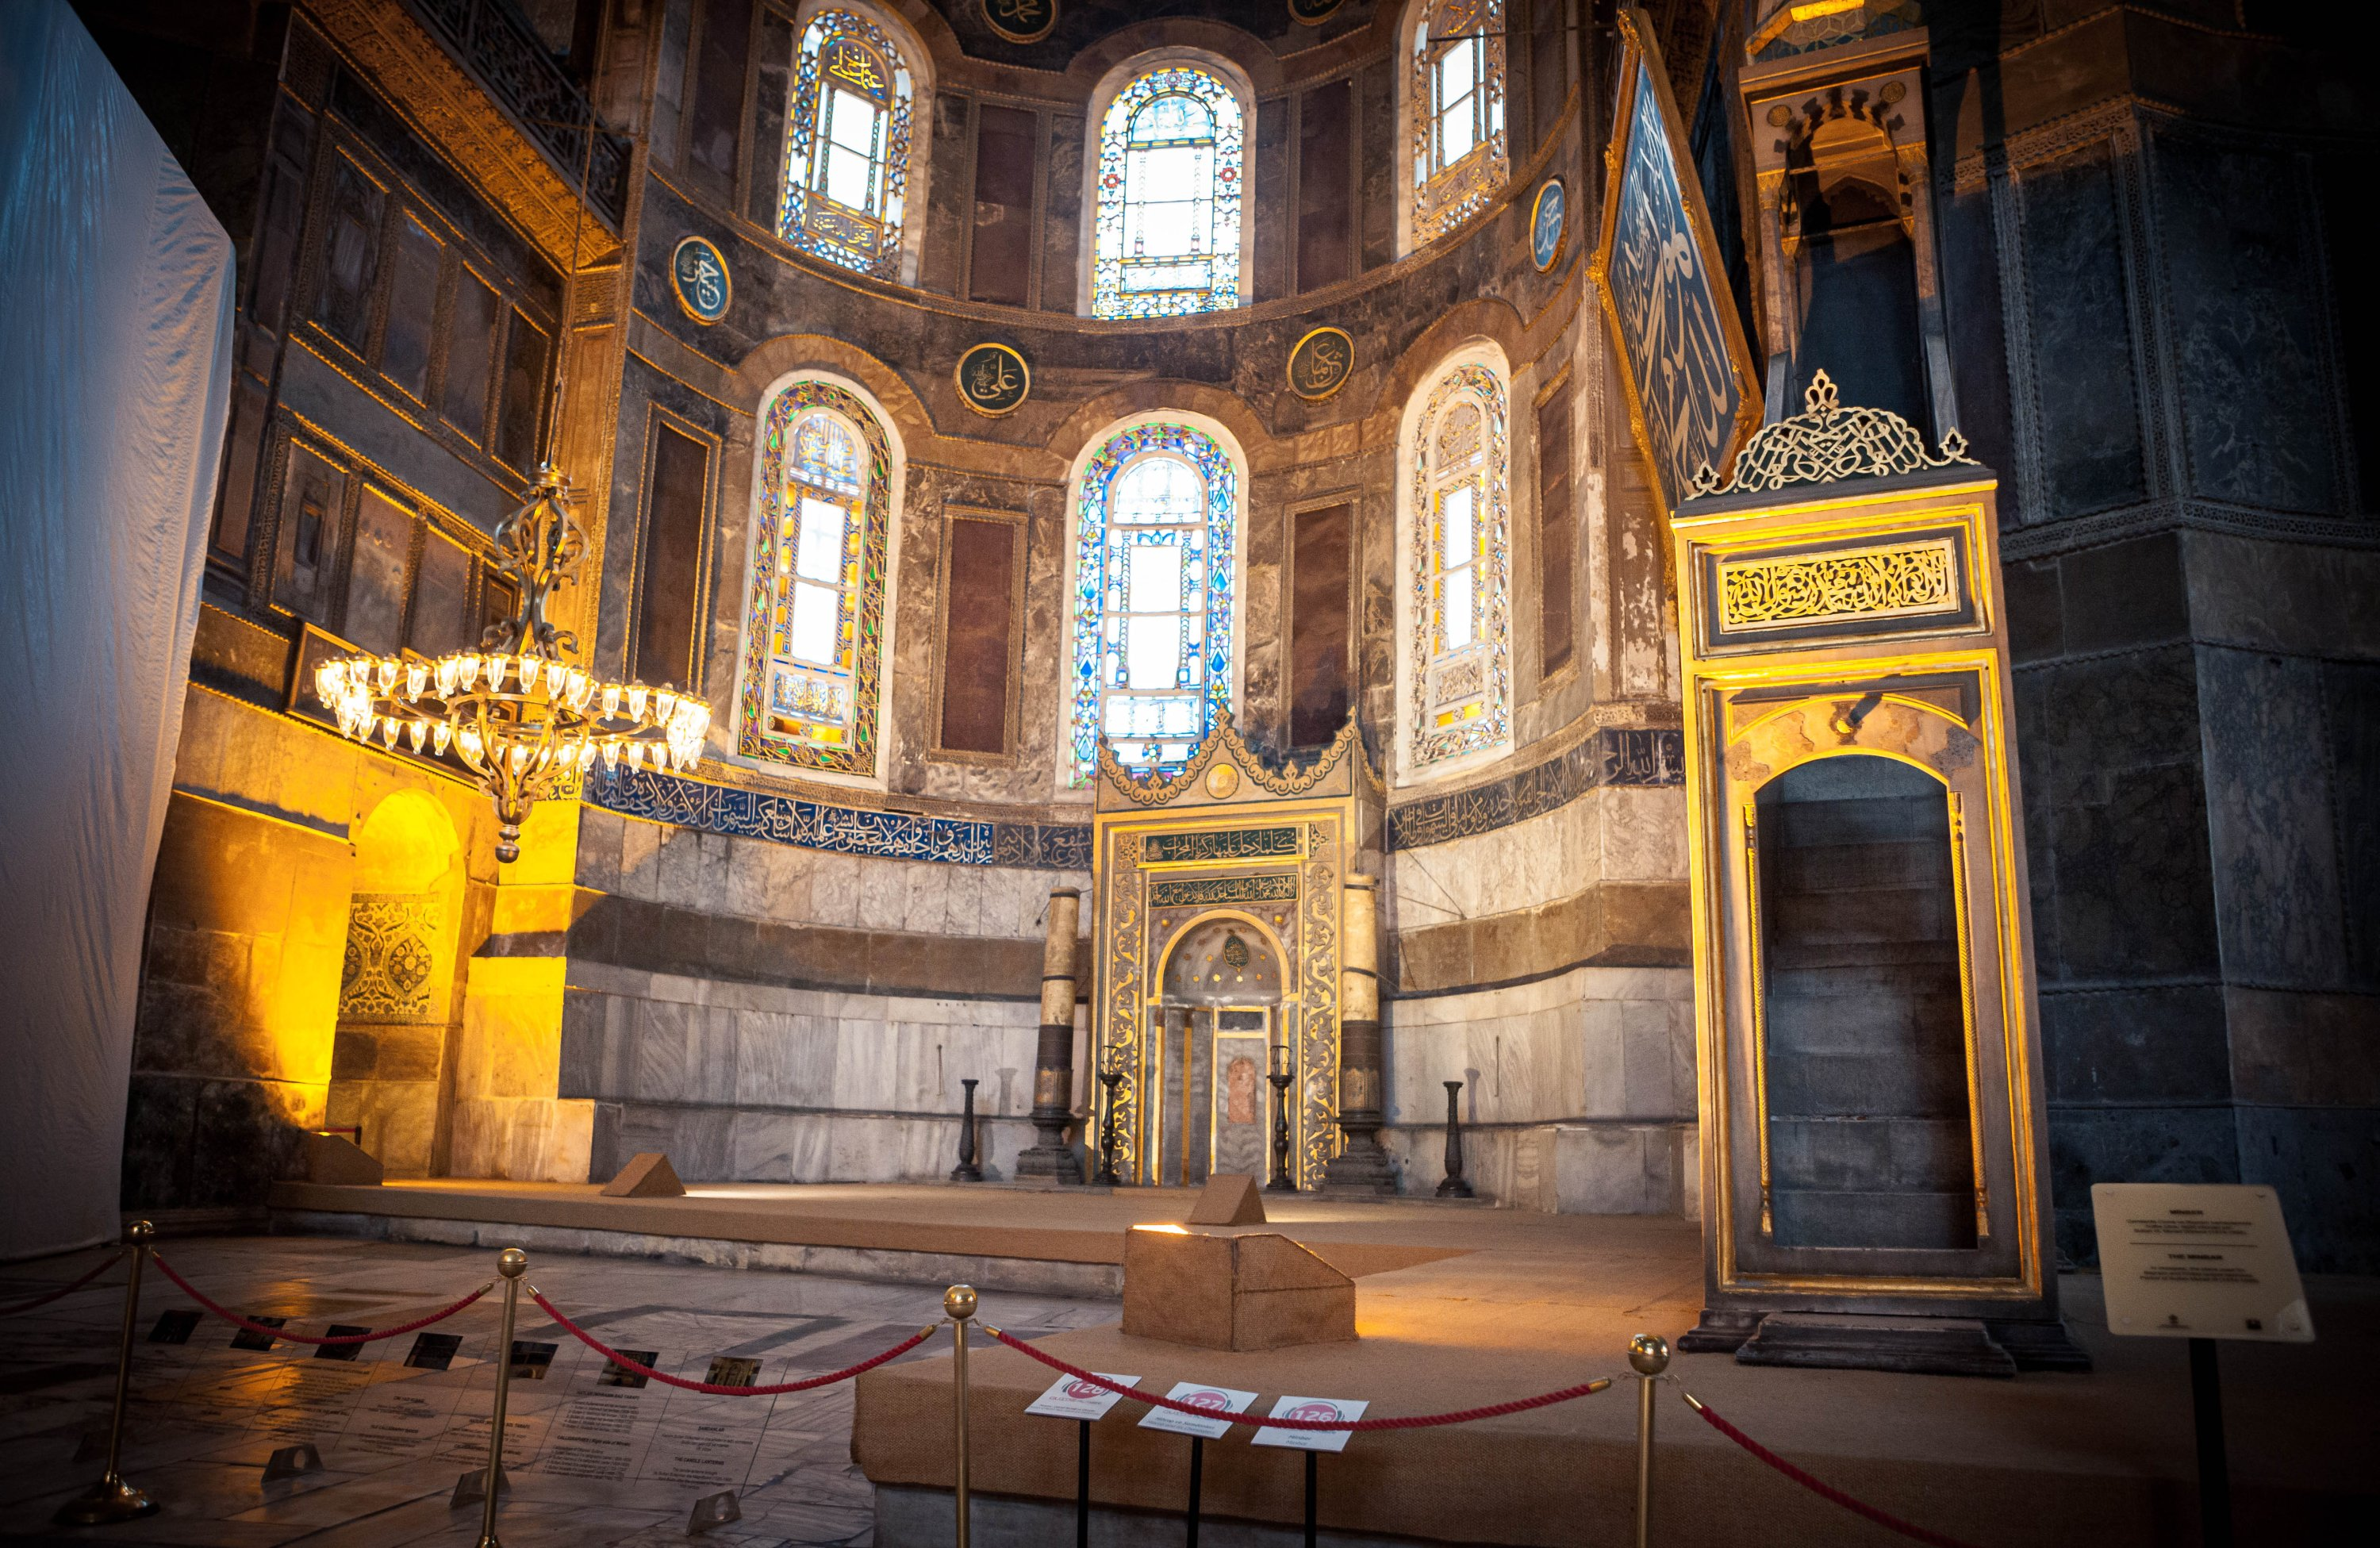 A photo from the interior of Hagia Sophia. (Photo by Hatice Çınar) (I will use these photos as multiple media on the web, this is why I wrote the same caption)